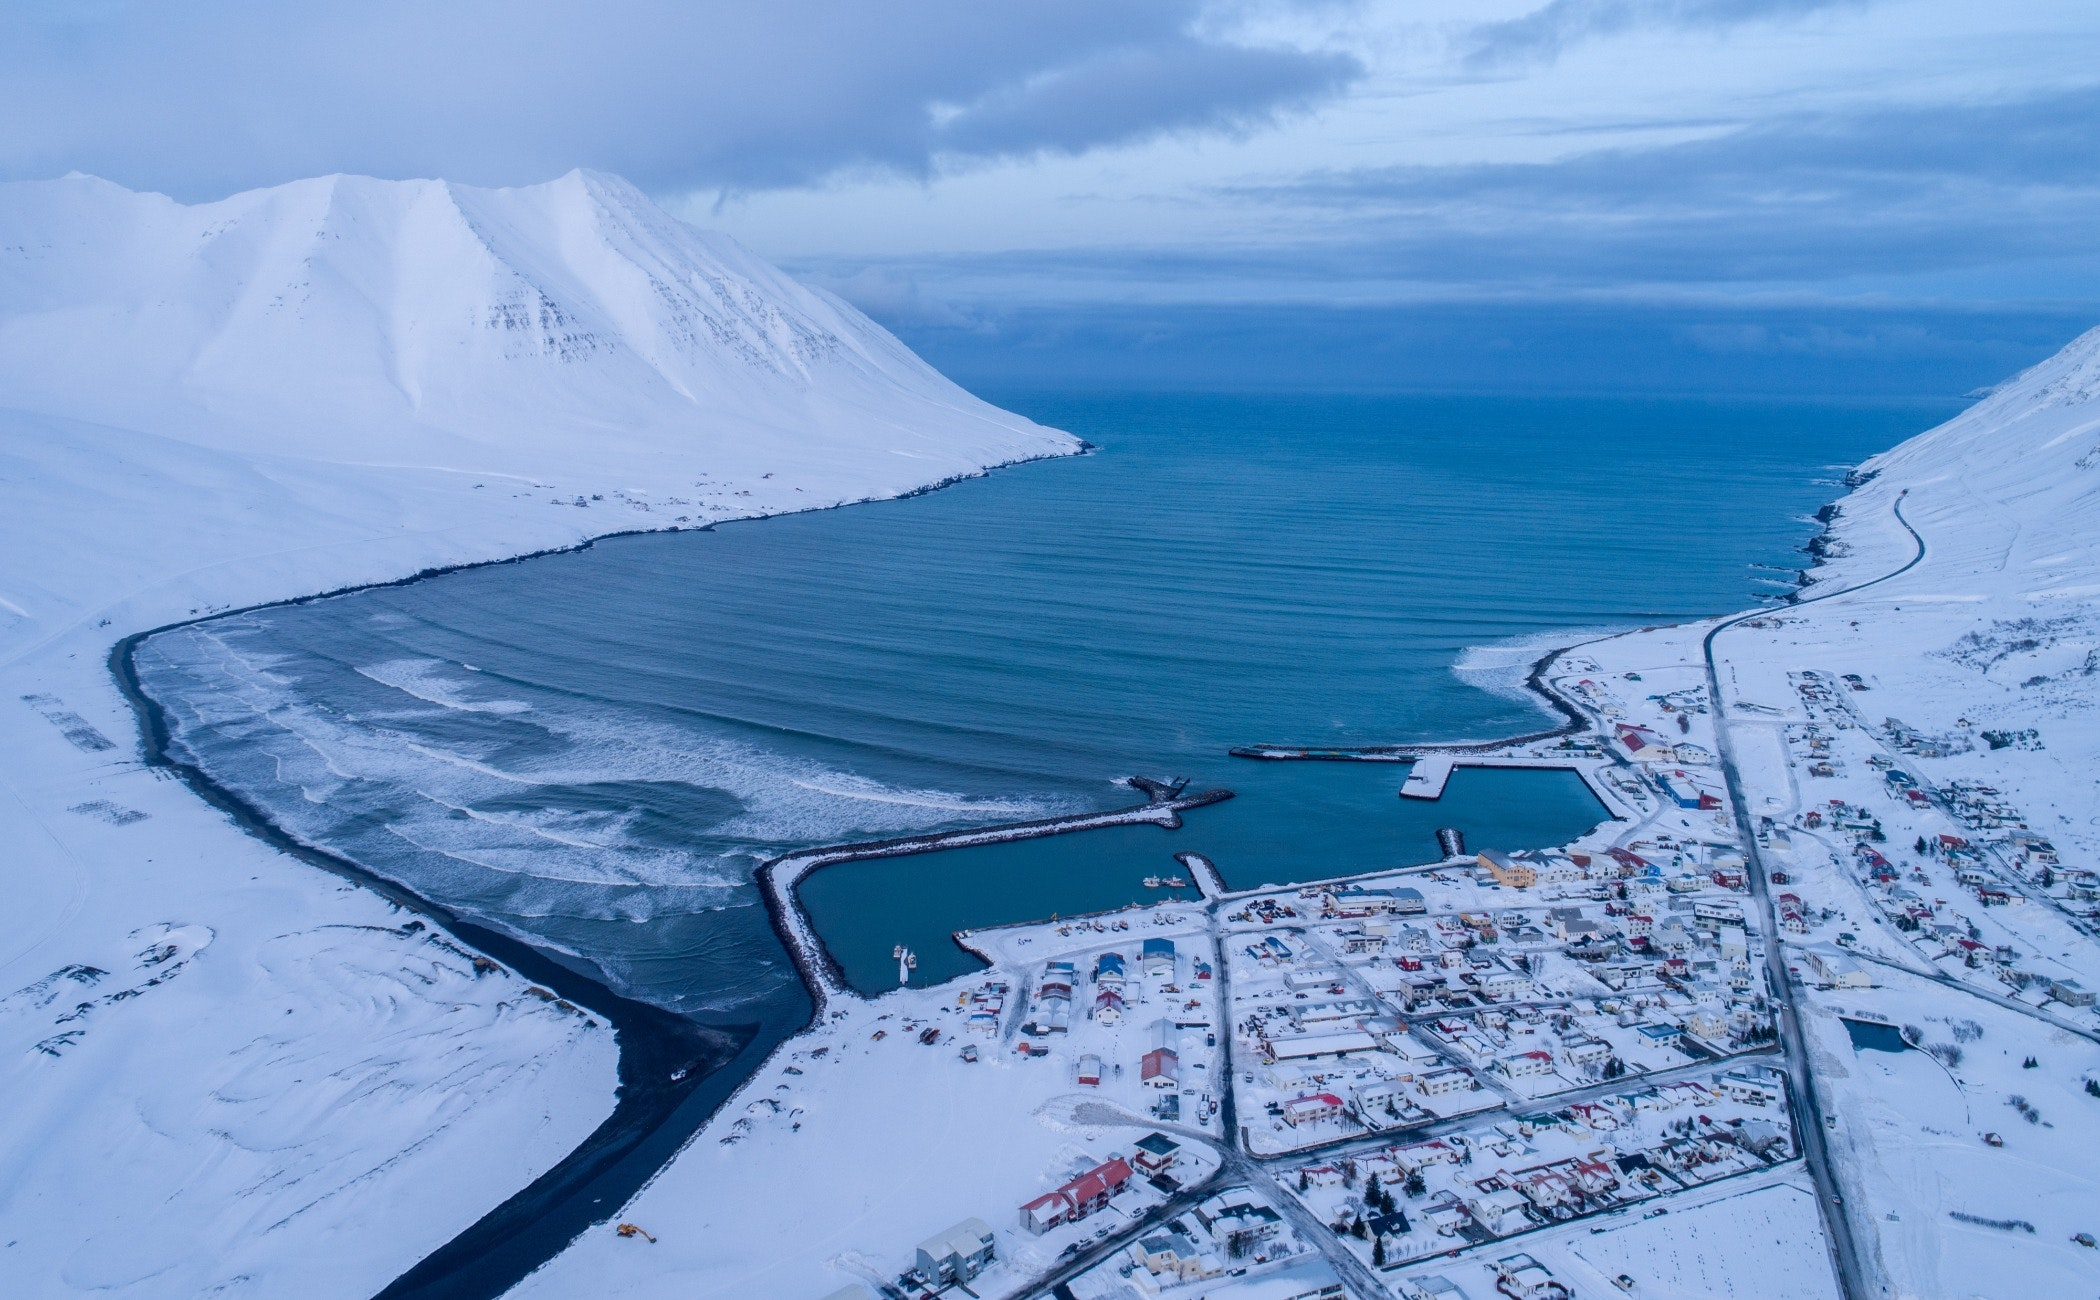 nature,outdoors,scenery,ice,mountain,landscape,snow,land,aerial view